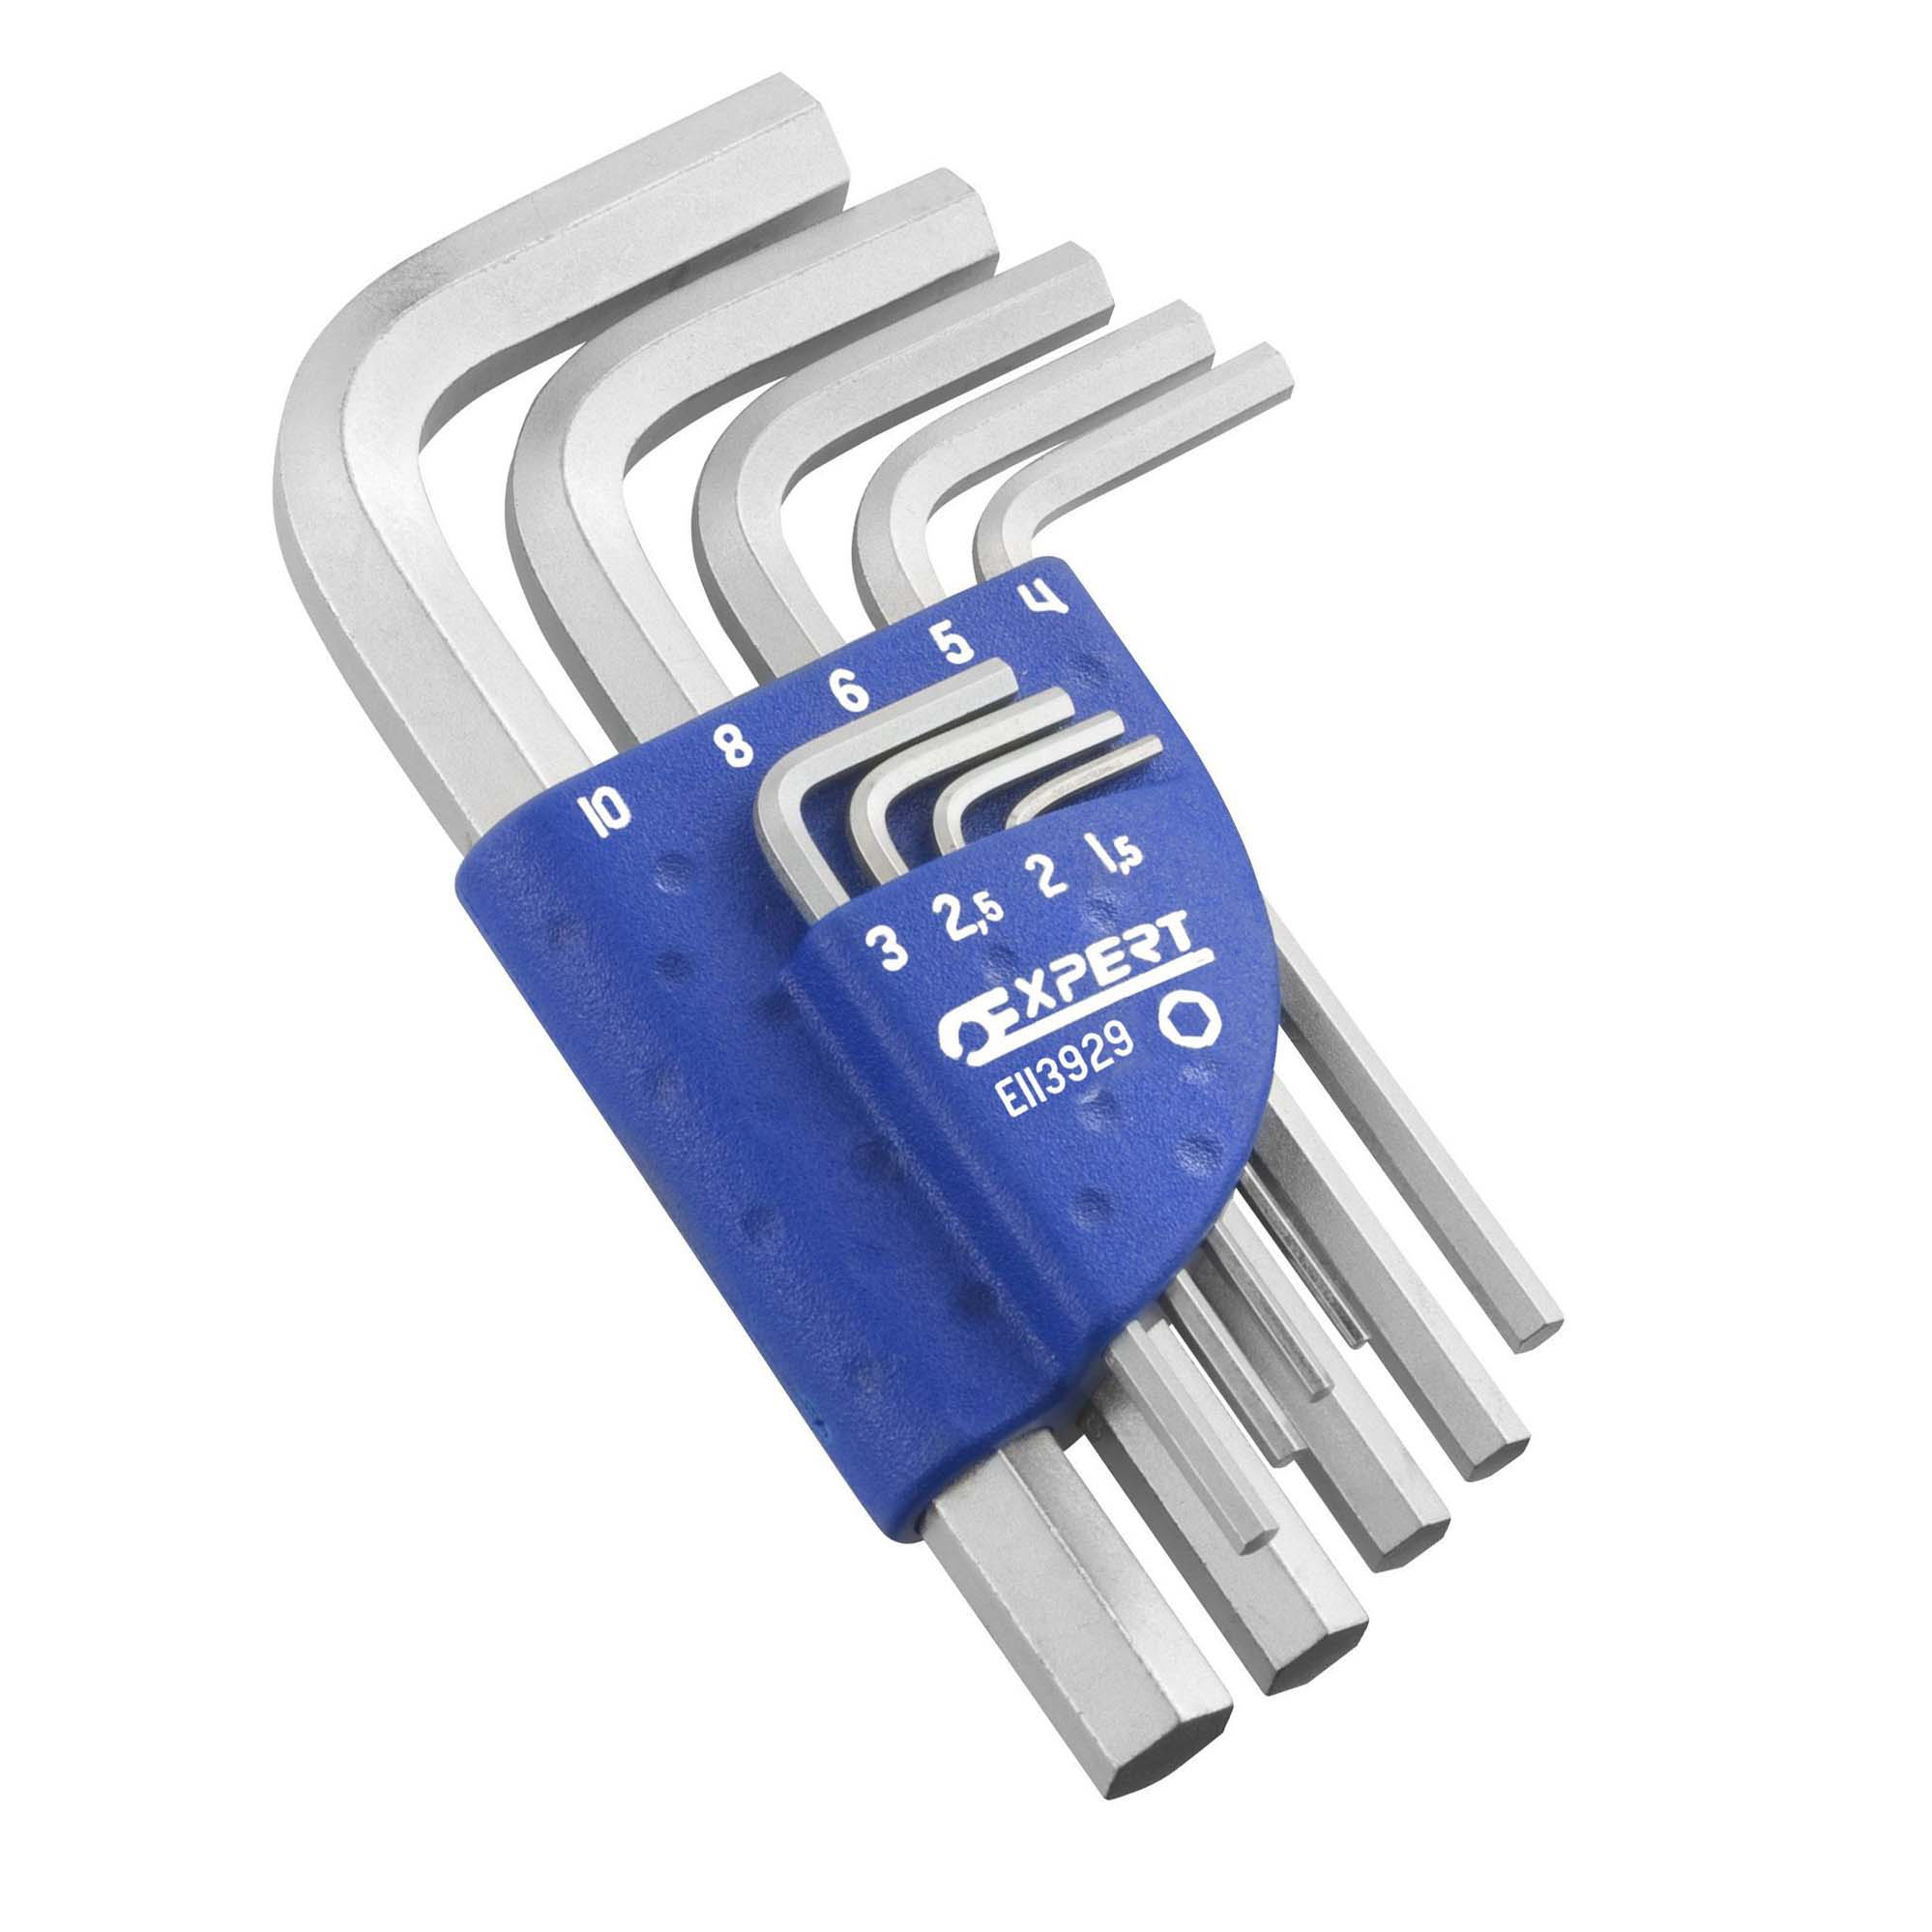 EXPERT E113929 - Short Hex Key Metric Set 1.5-10mm – 9pc